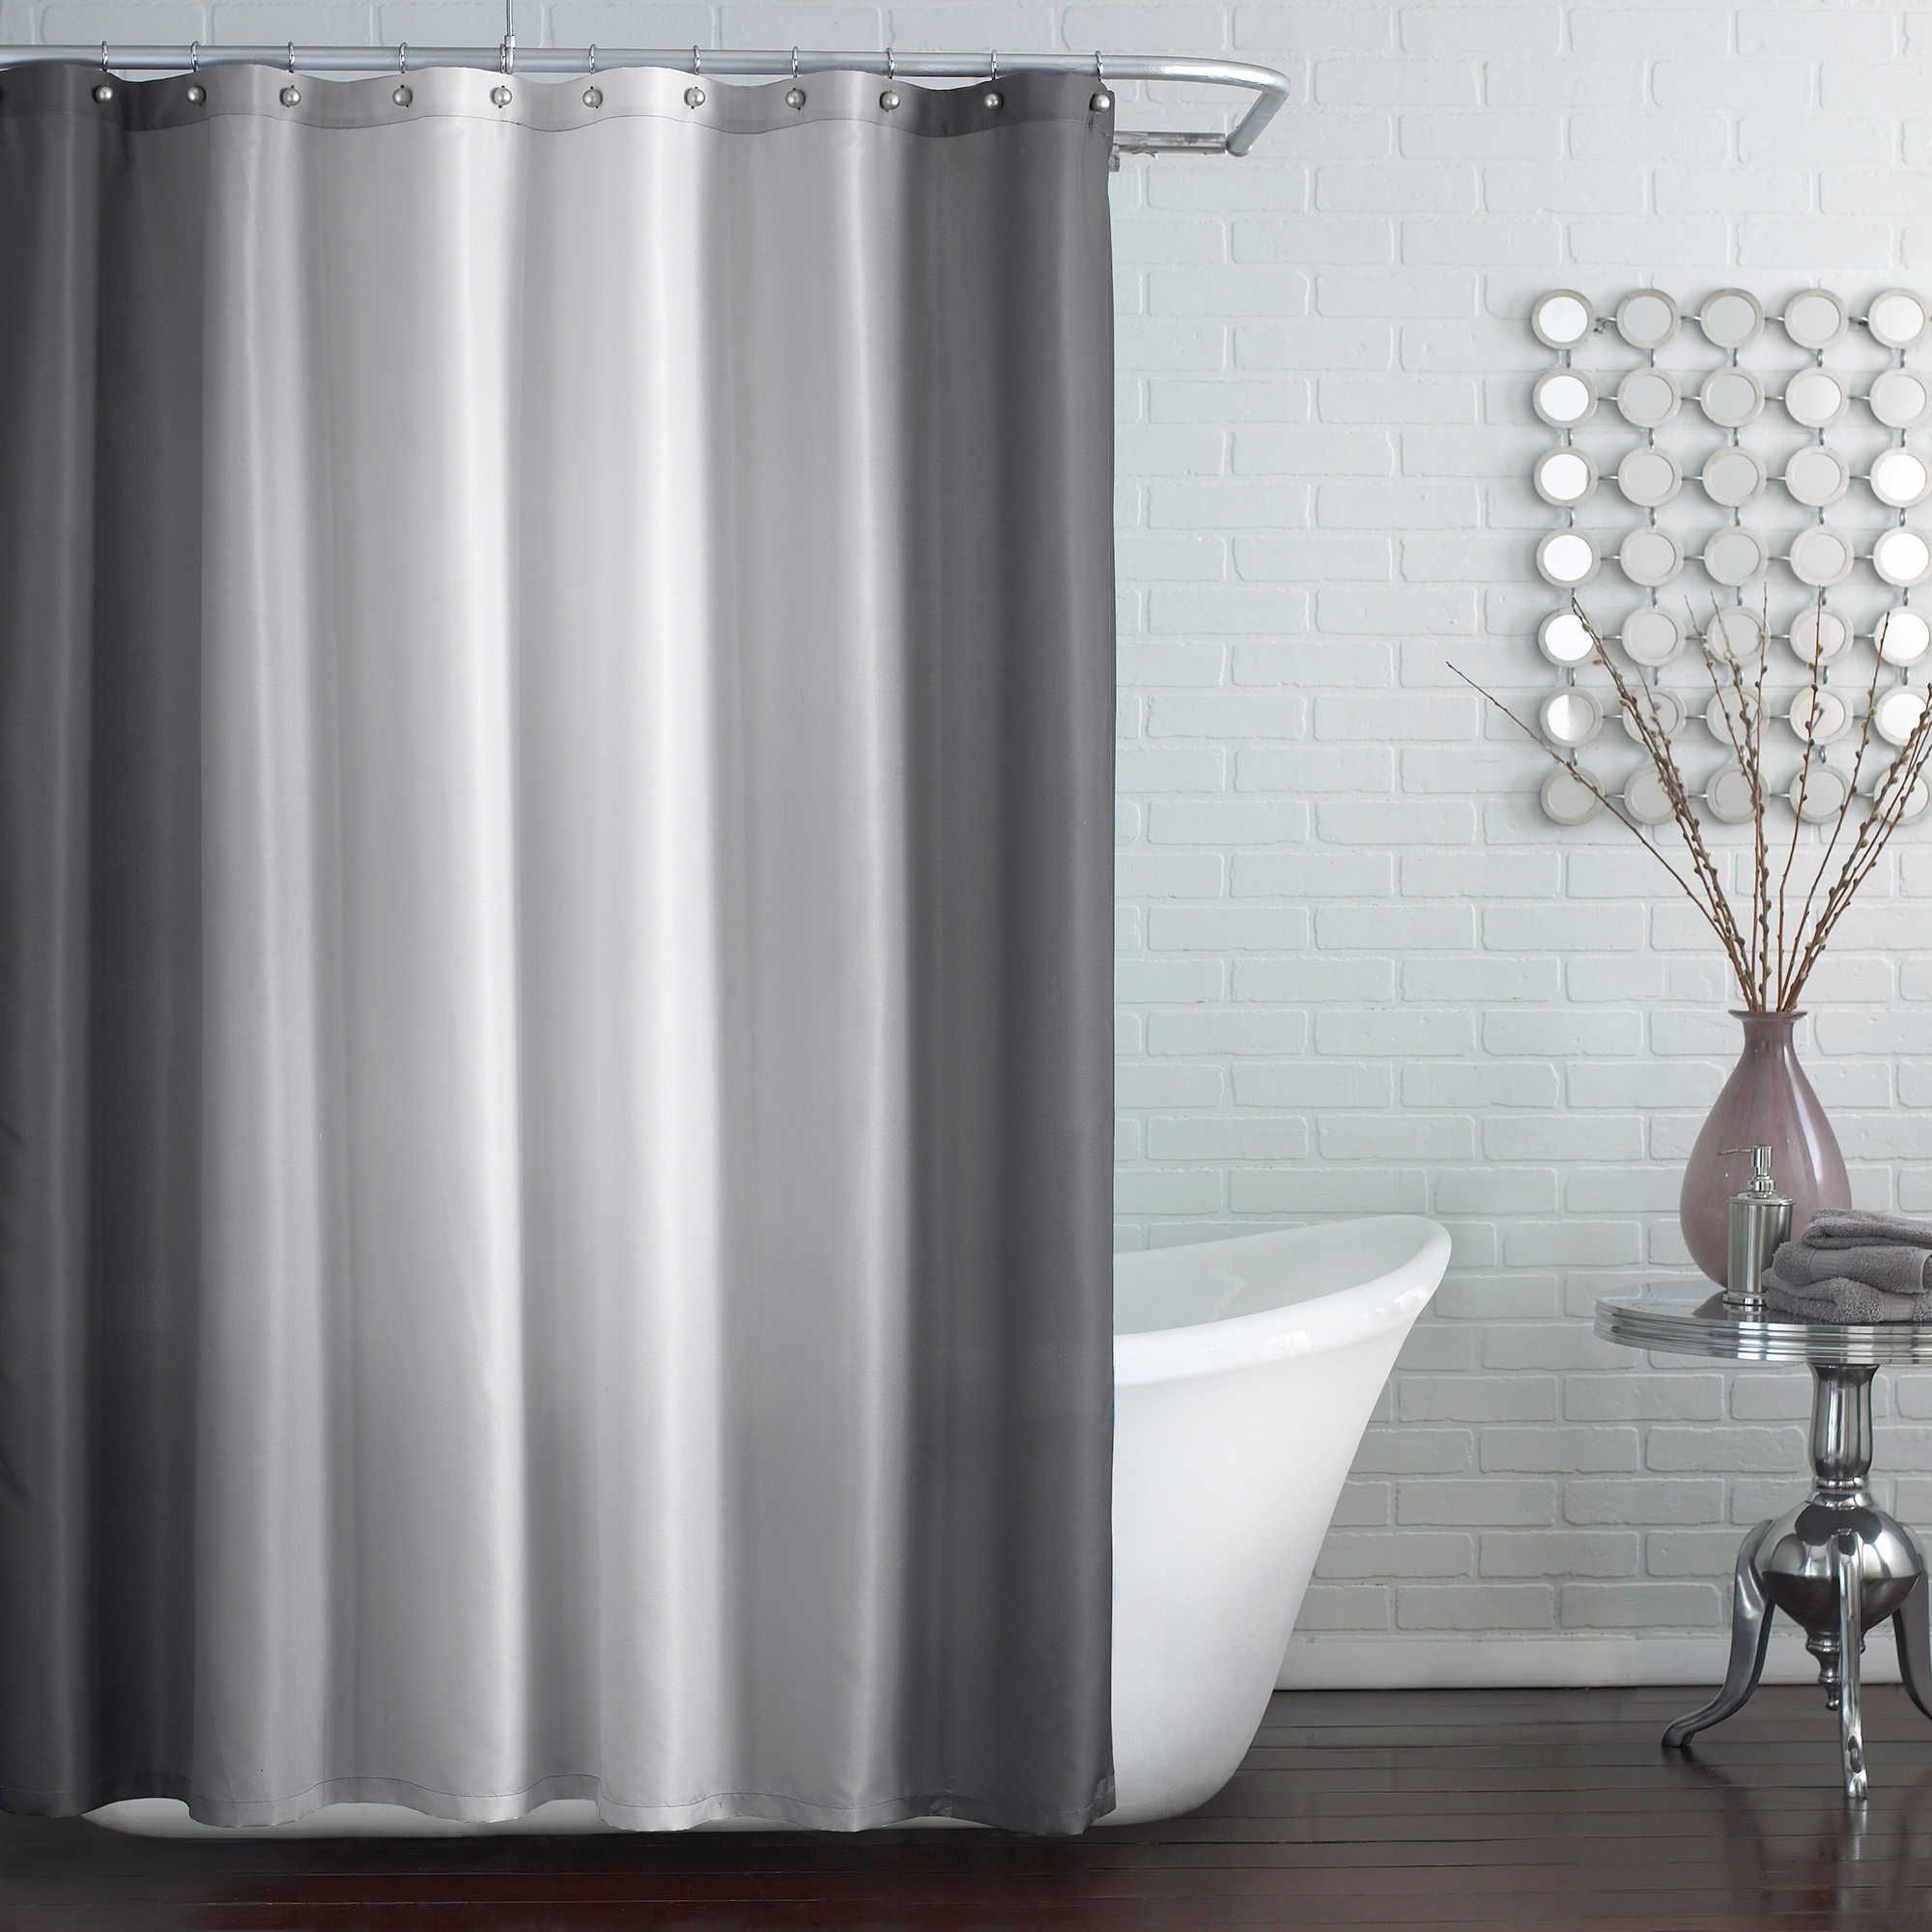 Luxury Extra Long Fabric Shower Curtain Liner 96 Check More At Https Homefurnitureone